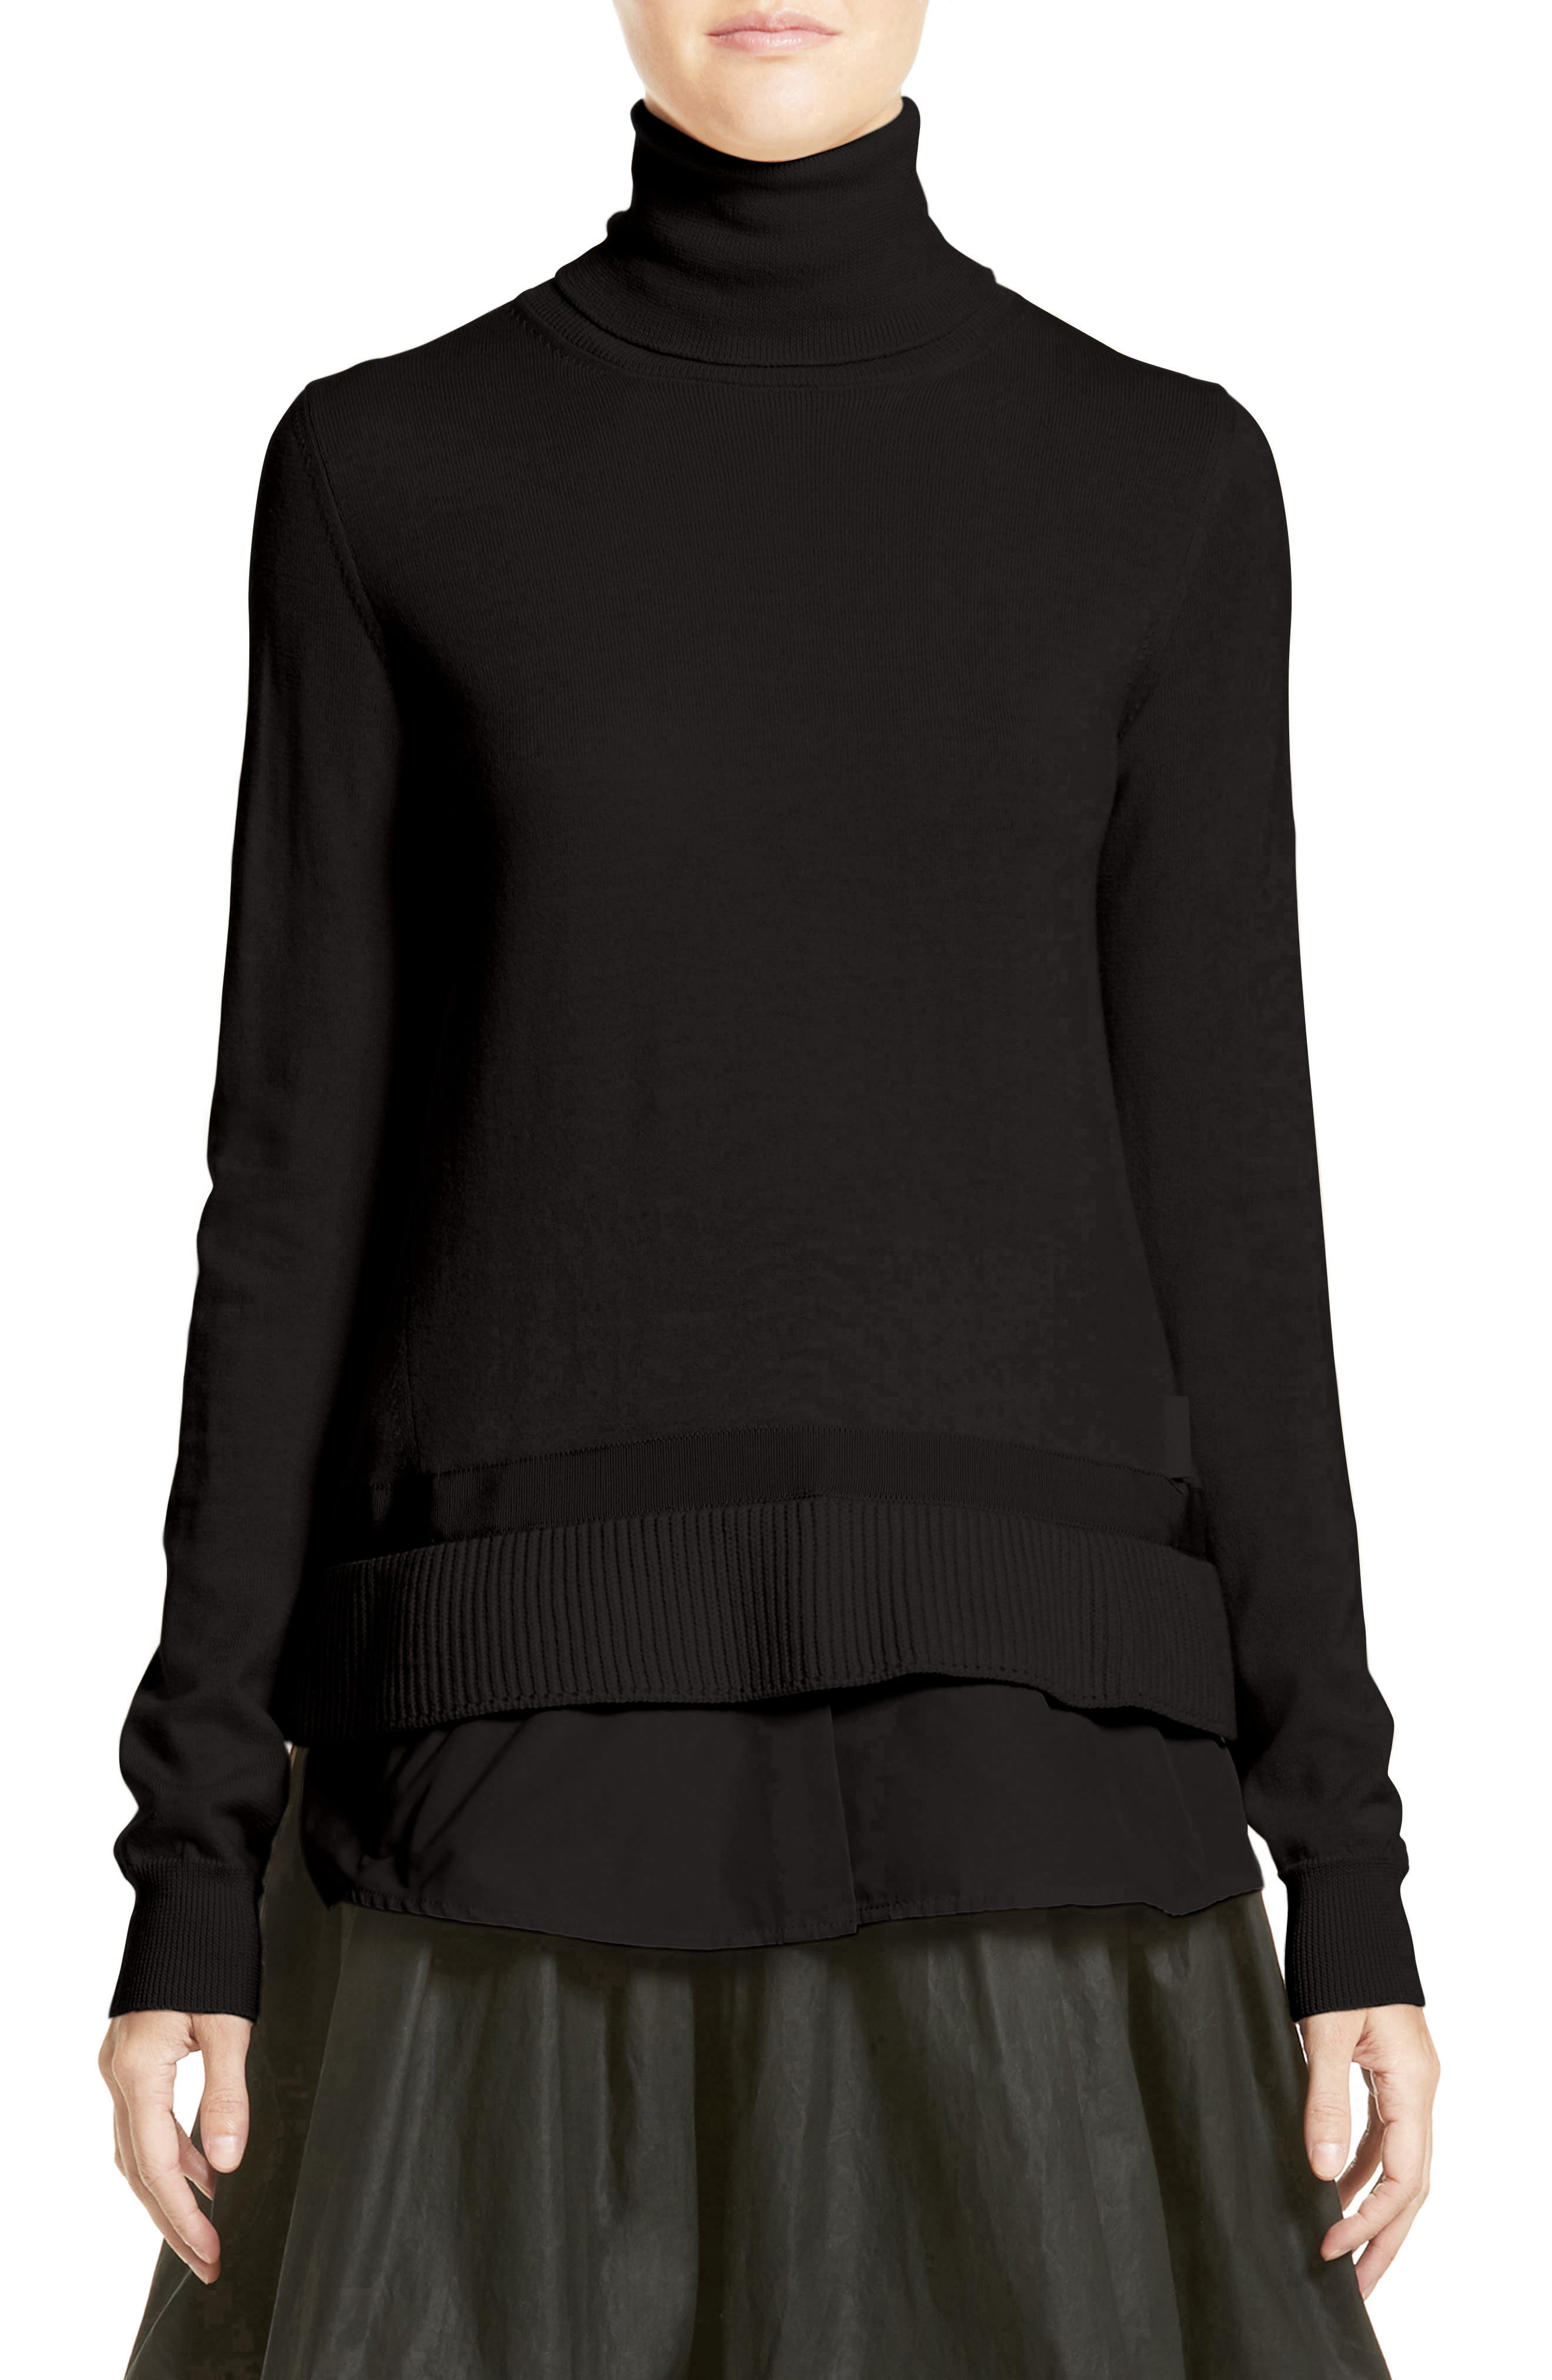 Ciclista Tricot Knit Wool Turtleneck Sweater,                         Main,                         color, 001